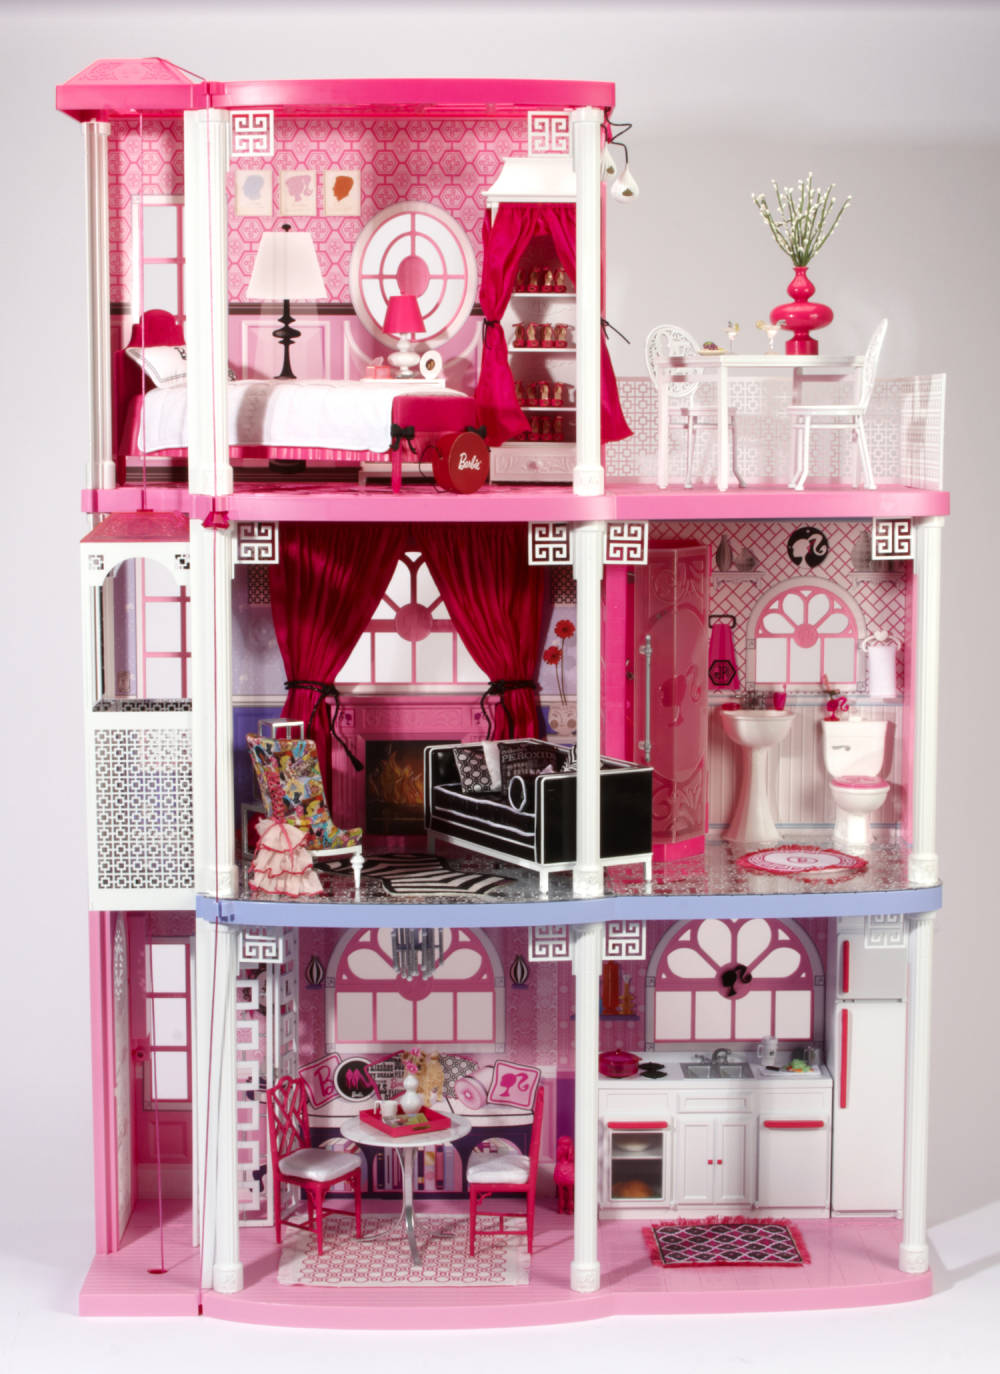 Jonathan Adler , Barbie Dream House